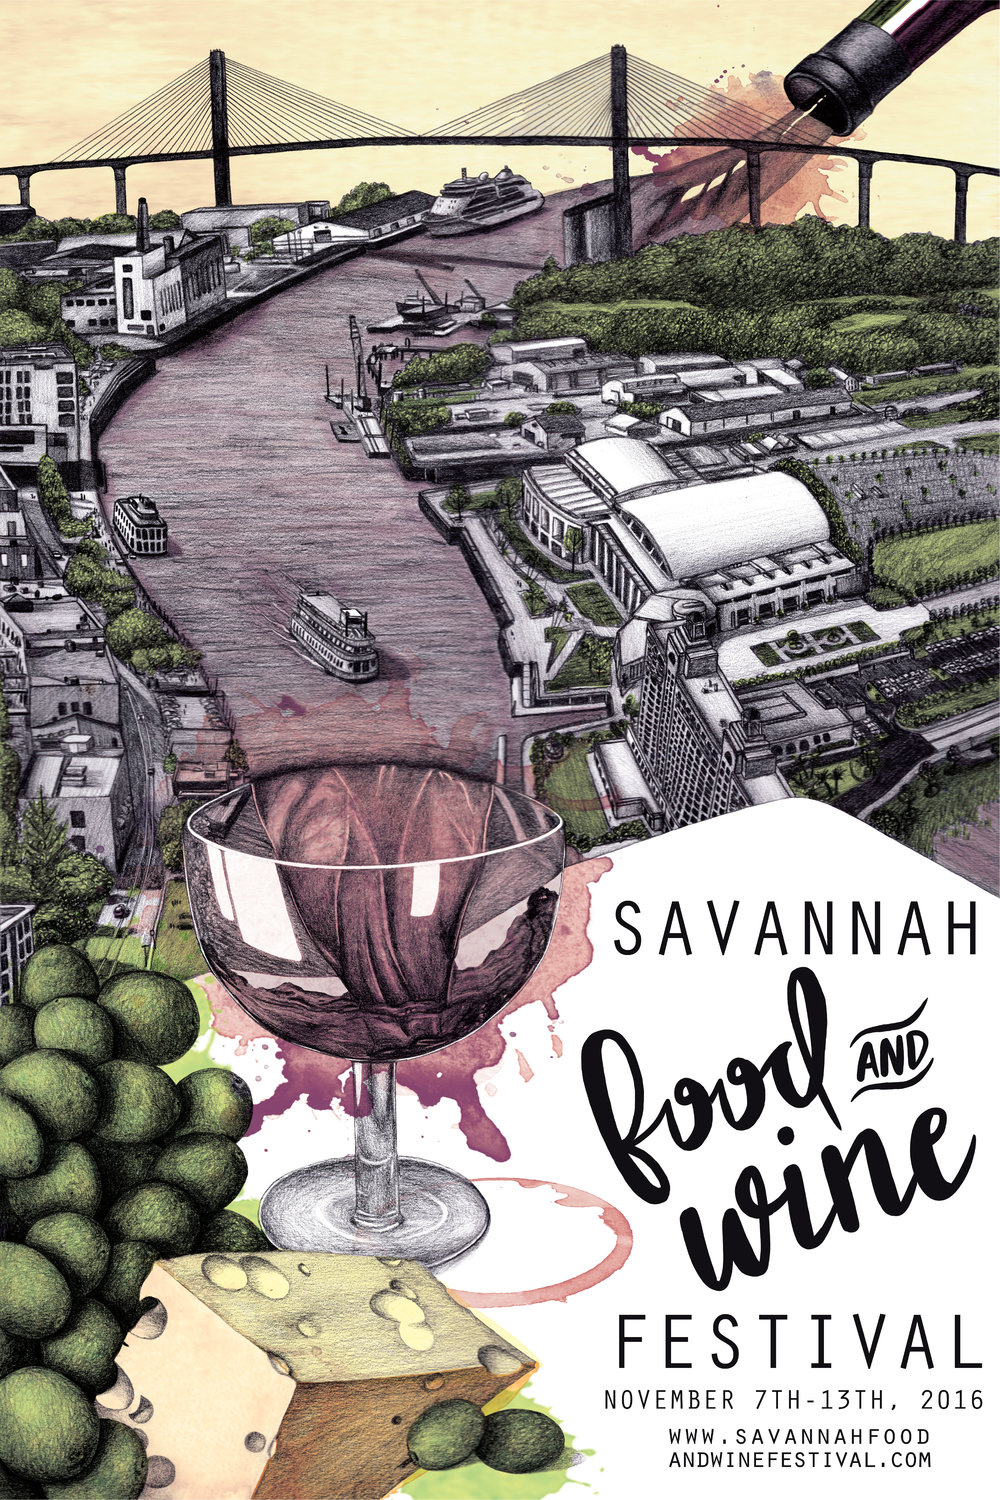 2016 Savannah Food & Wine Festival Poster | Lauren Rich | One Nine Design Co